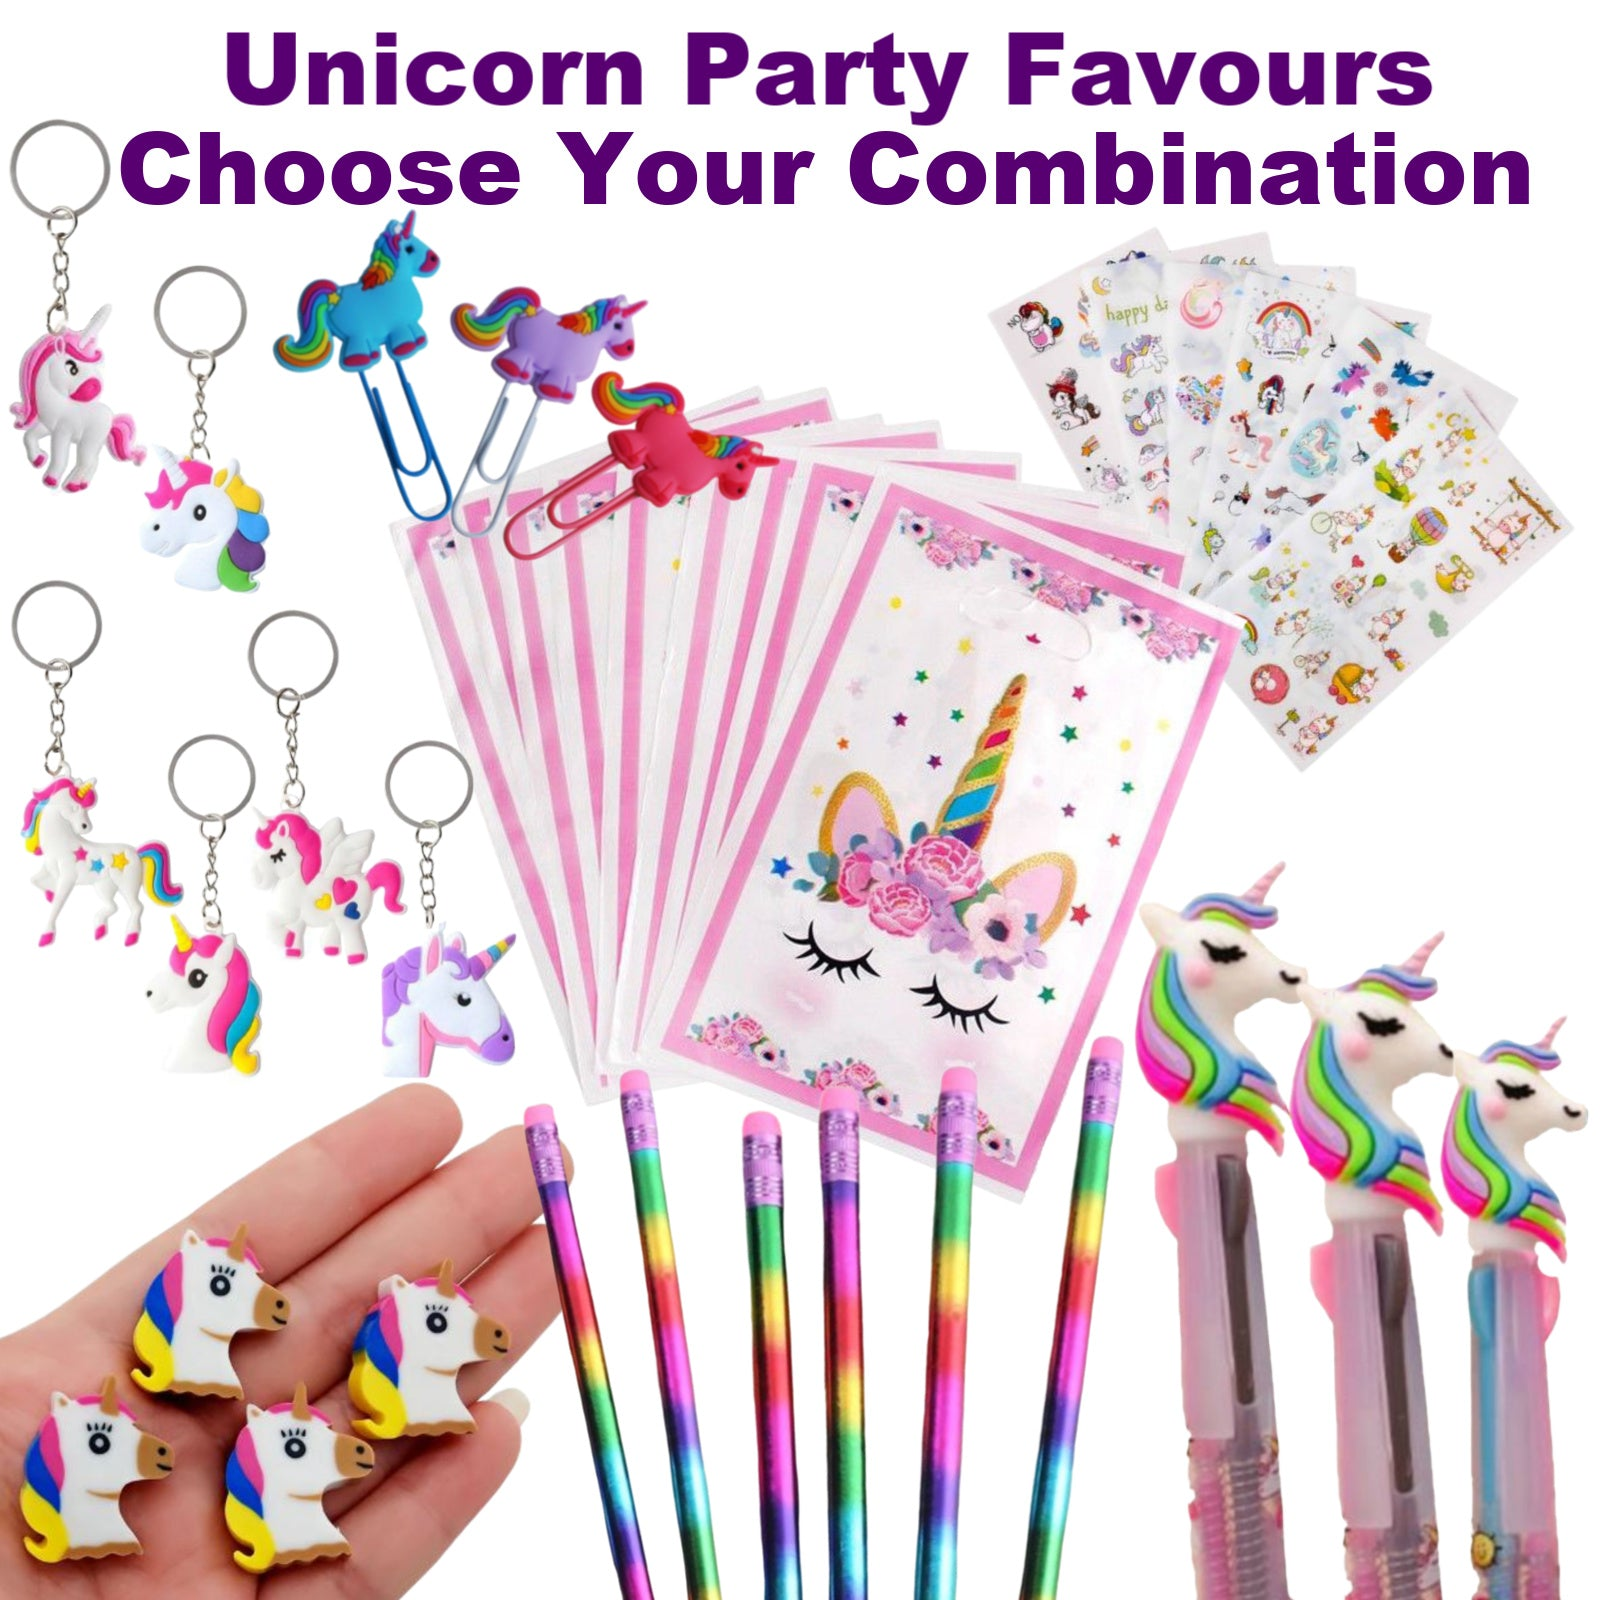 Unicorn Party Favours, Girls Birthday Party Favors